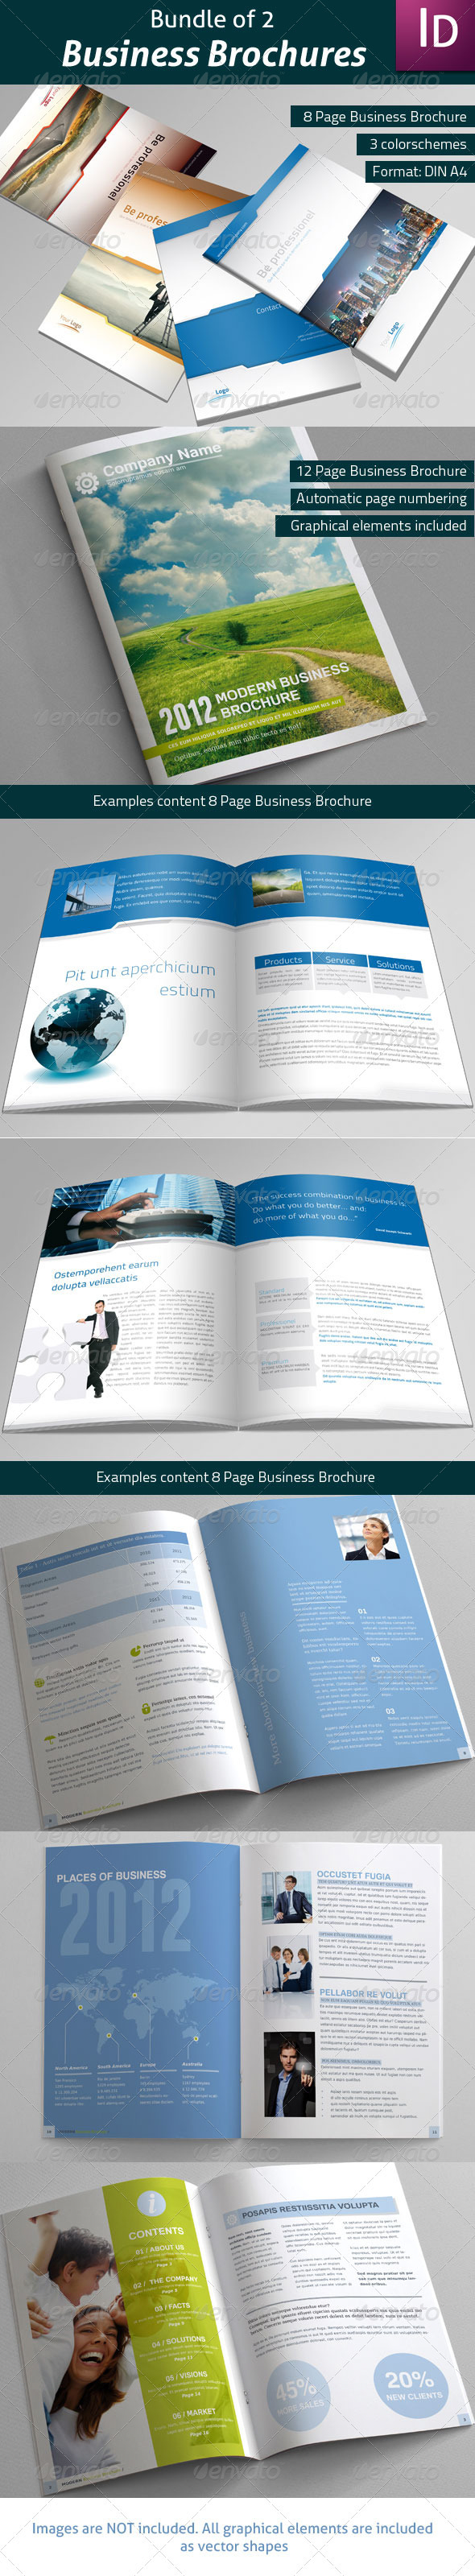 GraphicRiver Bundle of 2 Business Brochures 3477908